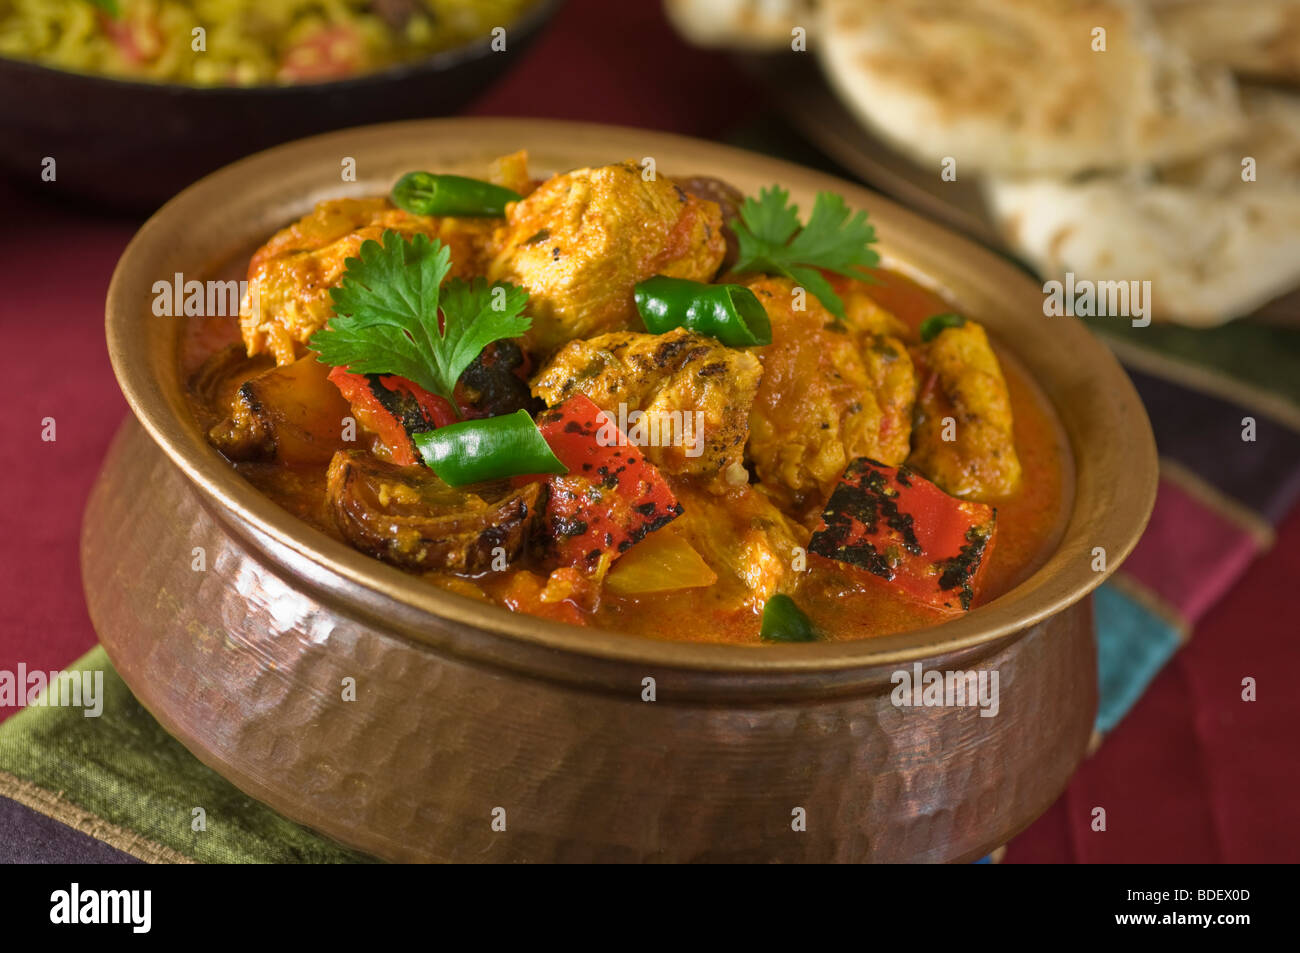 Chicken jalfrezi india south asia food stock photo 25528621 alamy chicken jalfrezi india south asia food forumfinder Choice Image